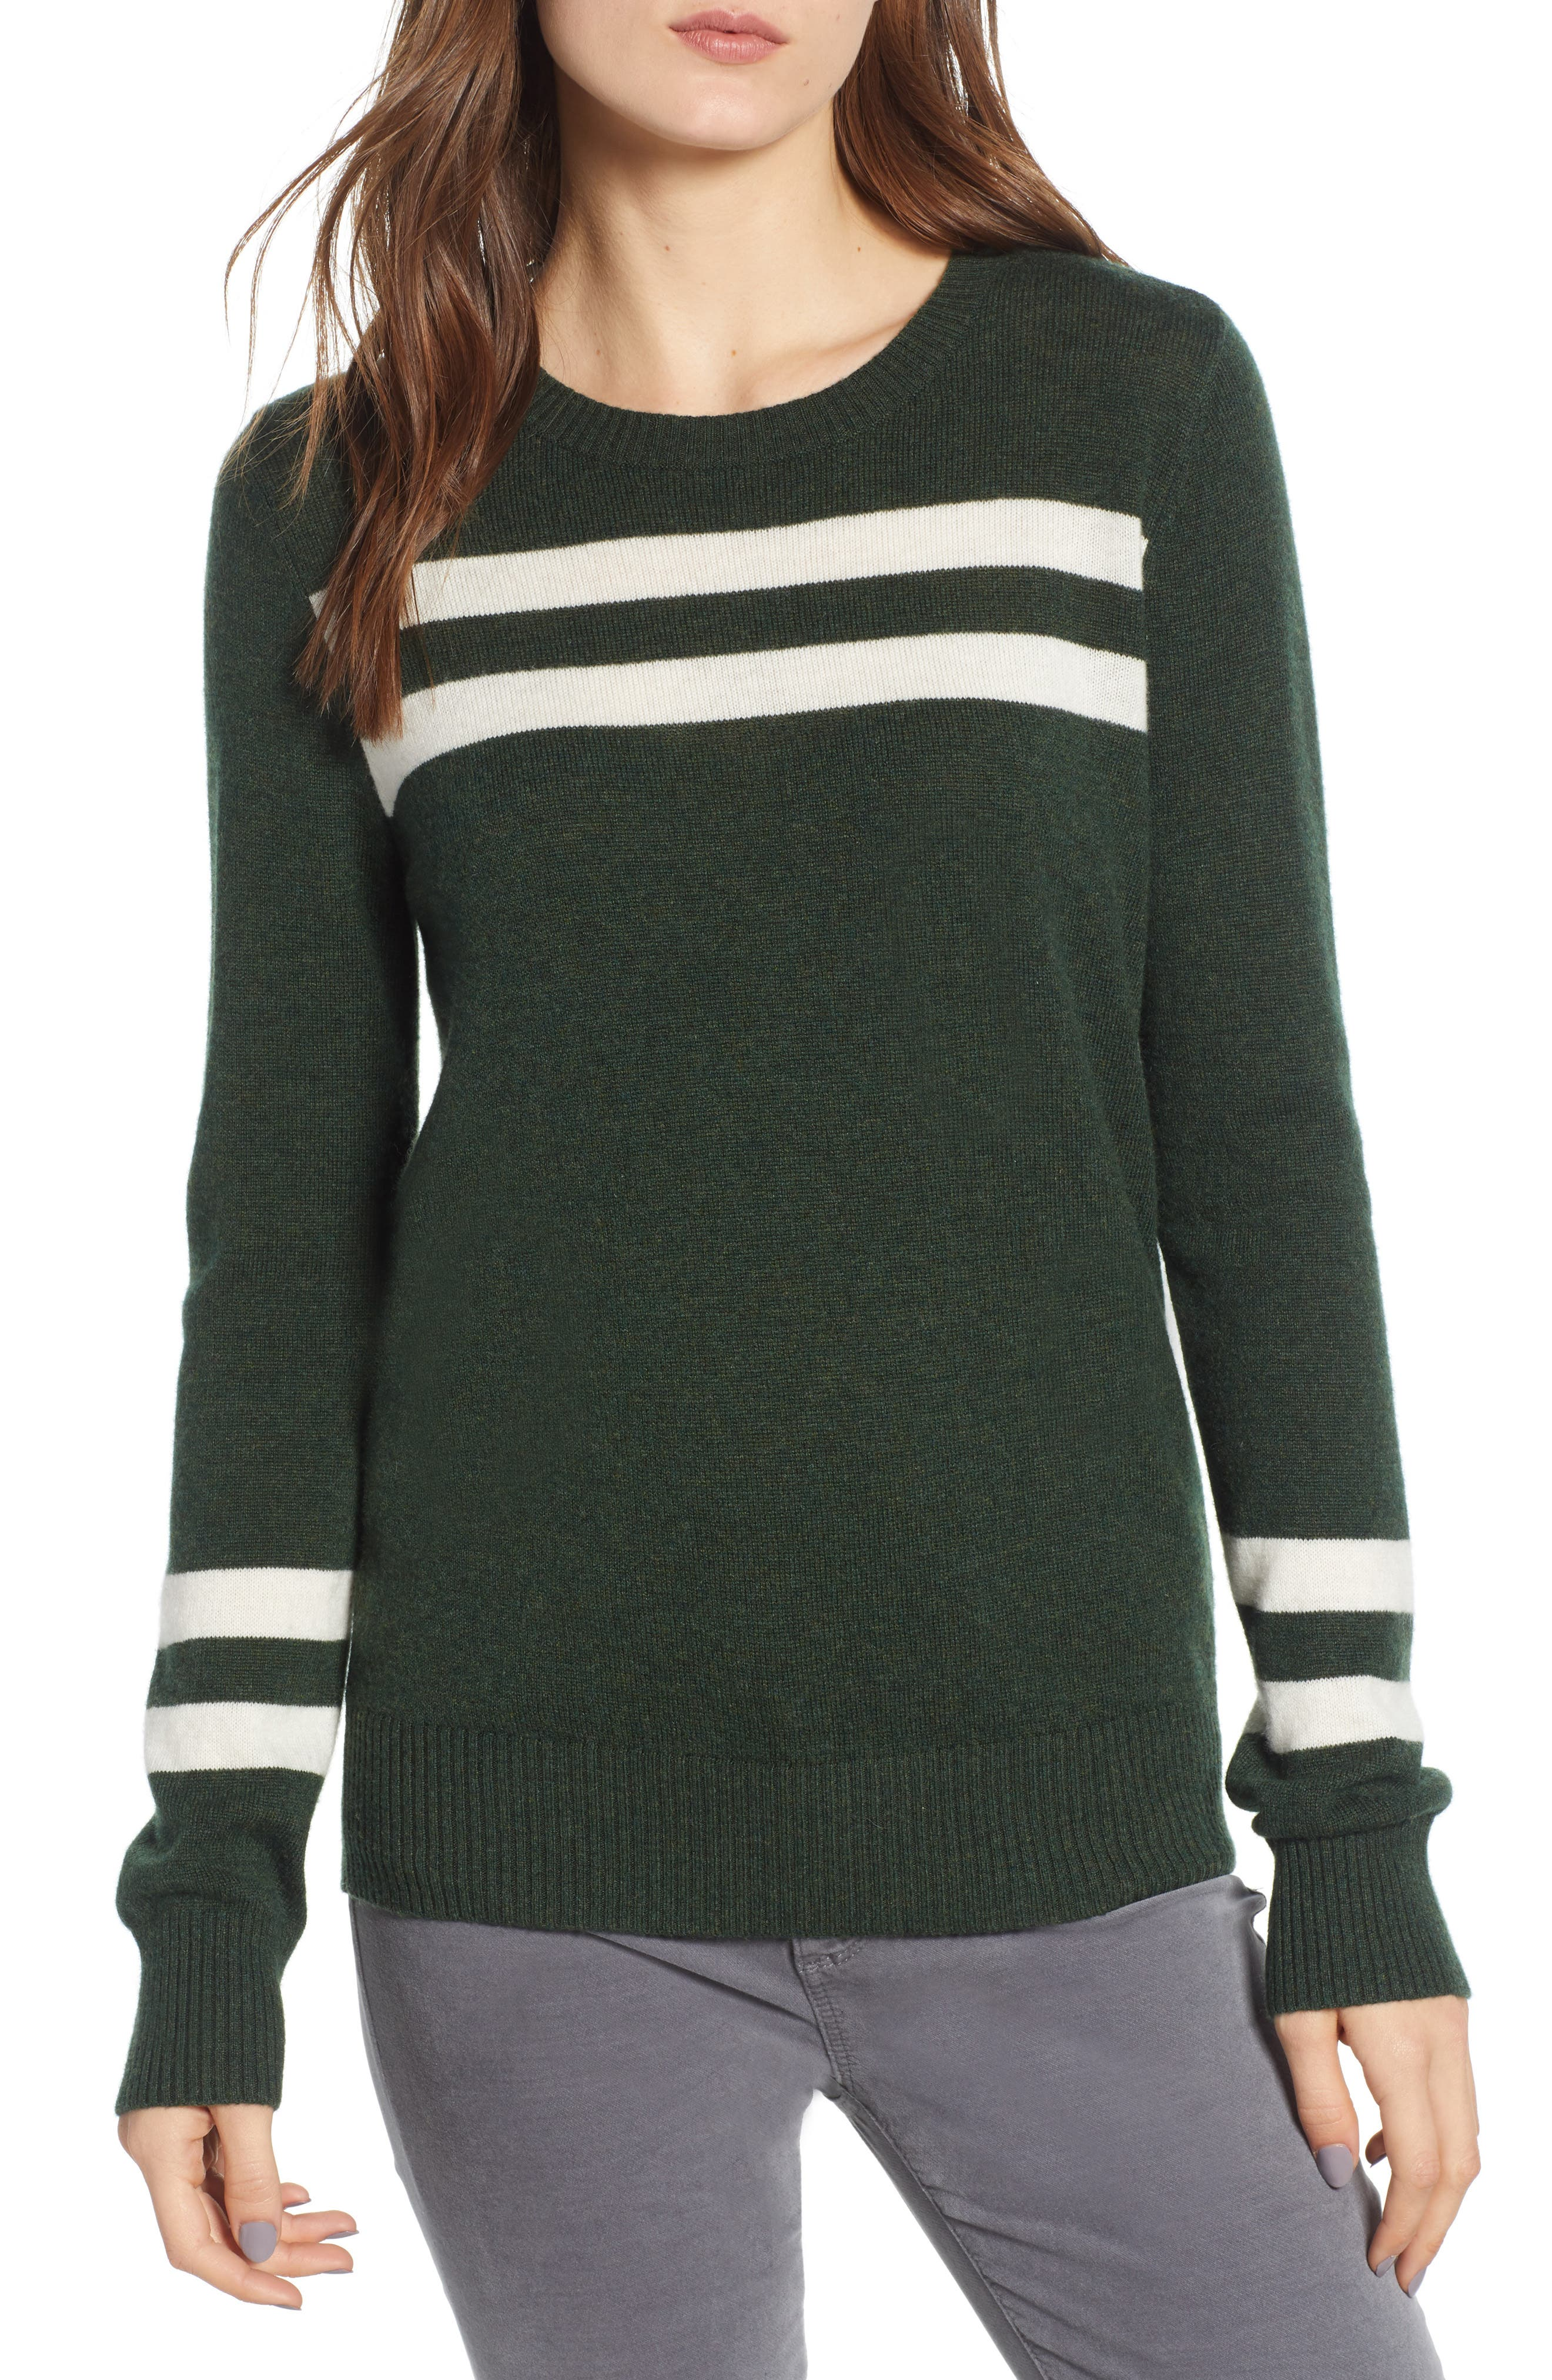 Marlowe Sweater,                             Main thumbnail 1, color,                             Eden/ White